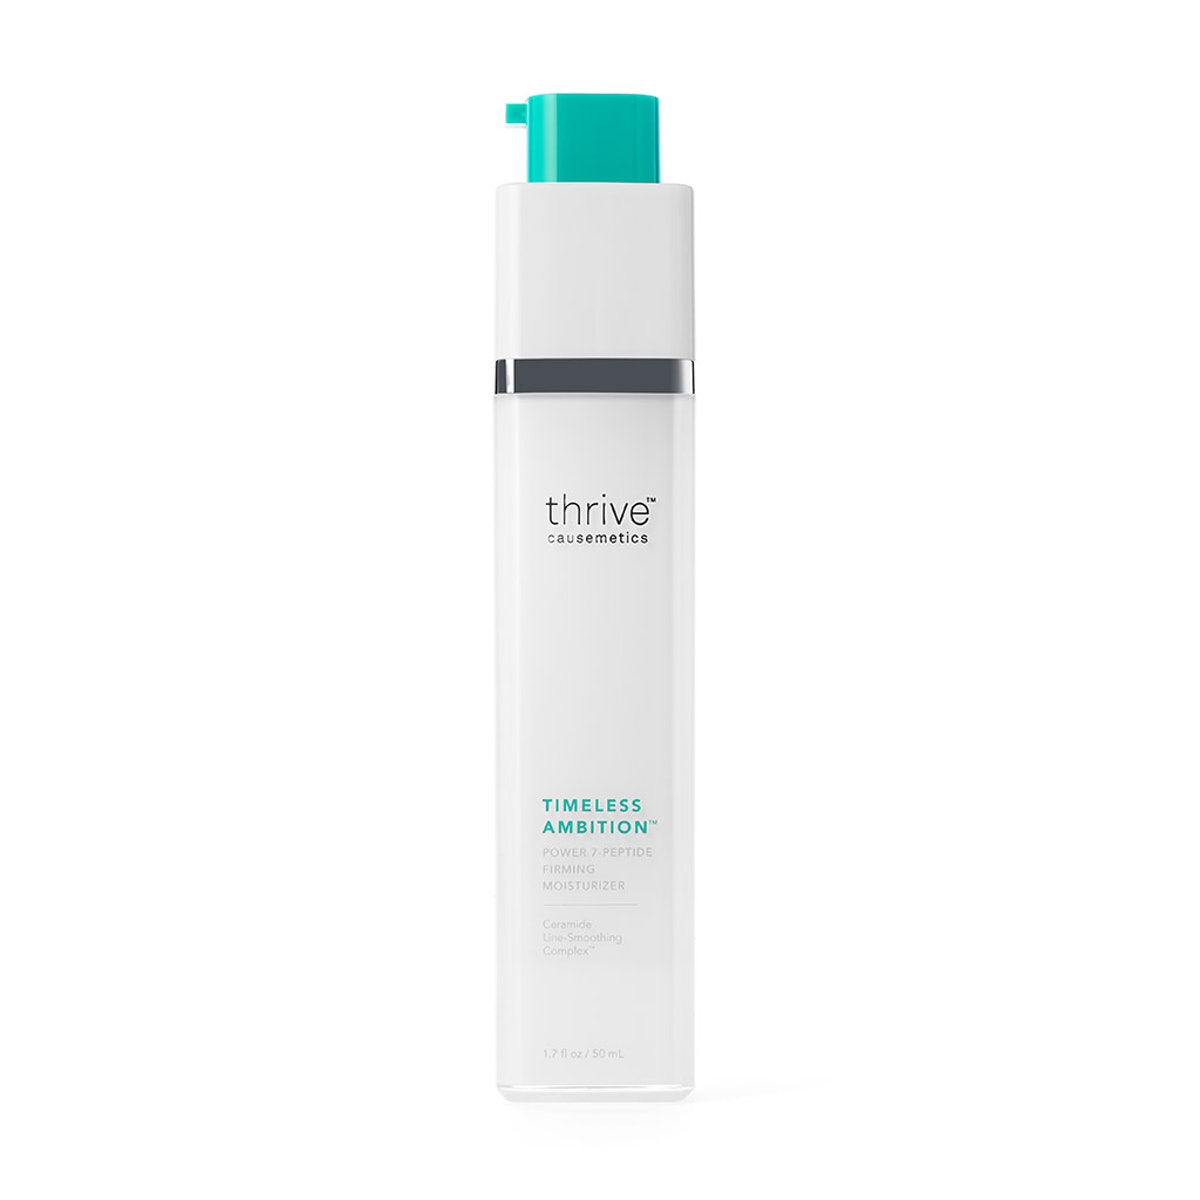 Timeless Ambition Power 7-Peptide Firming Moisturizer